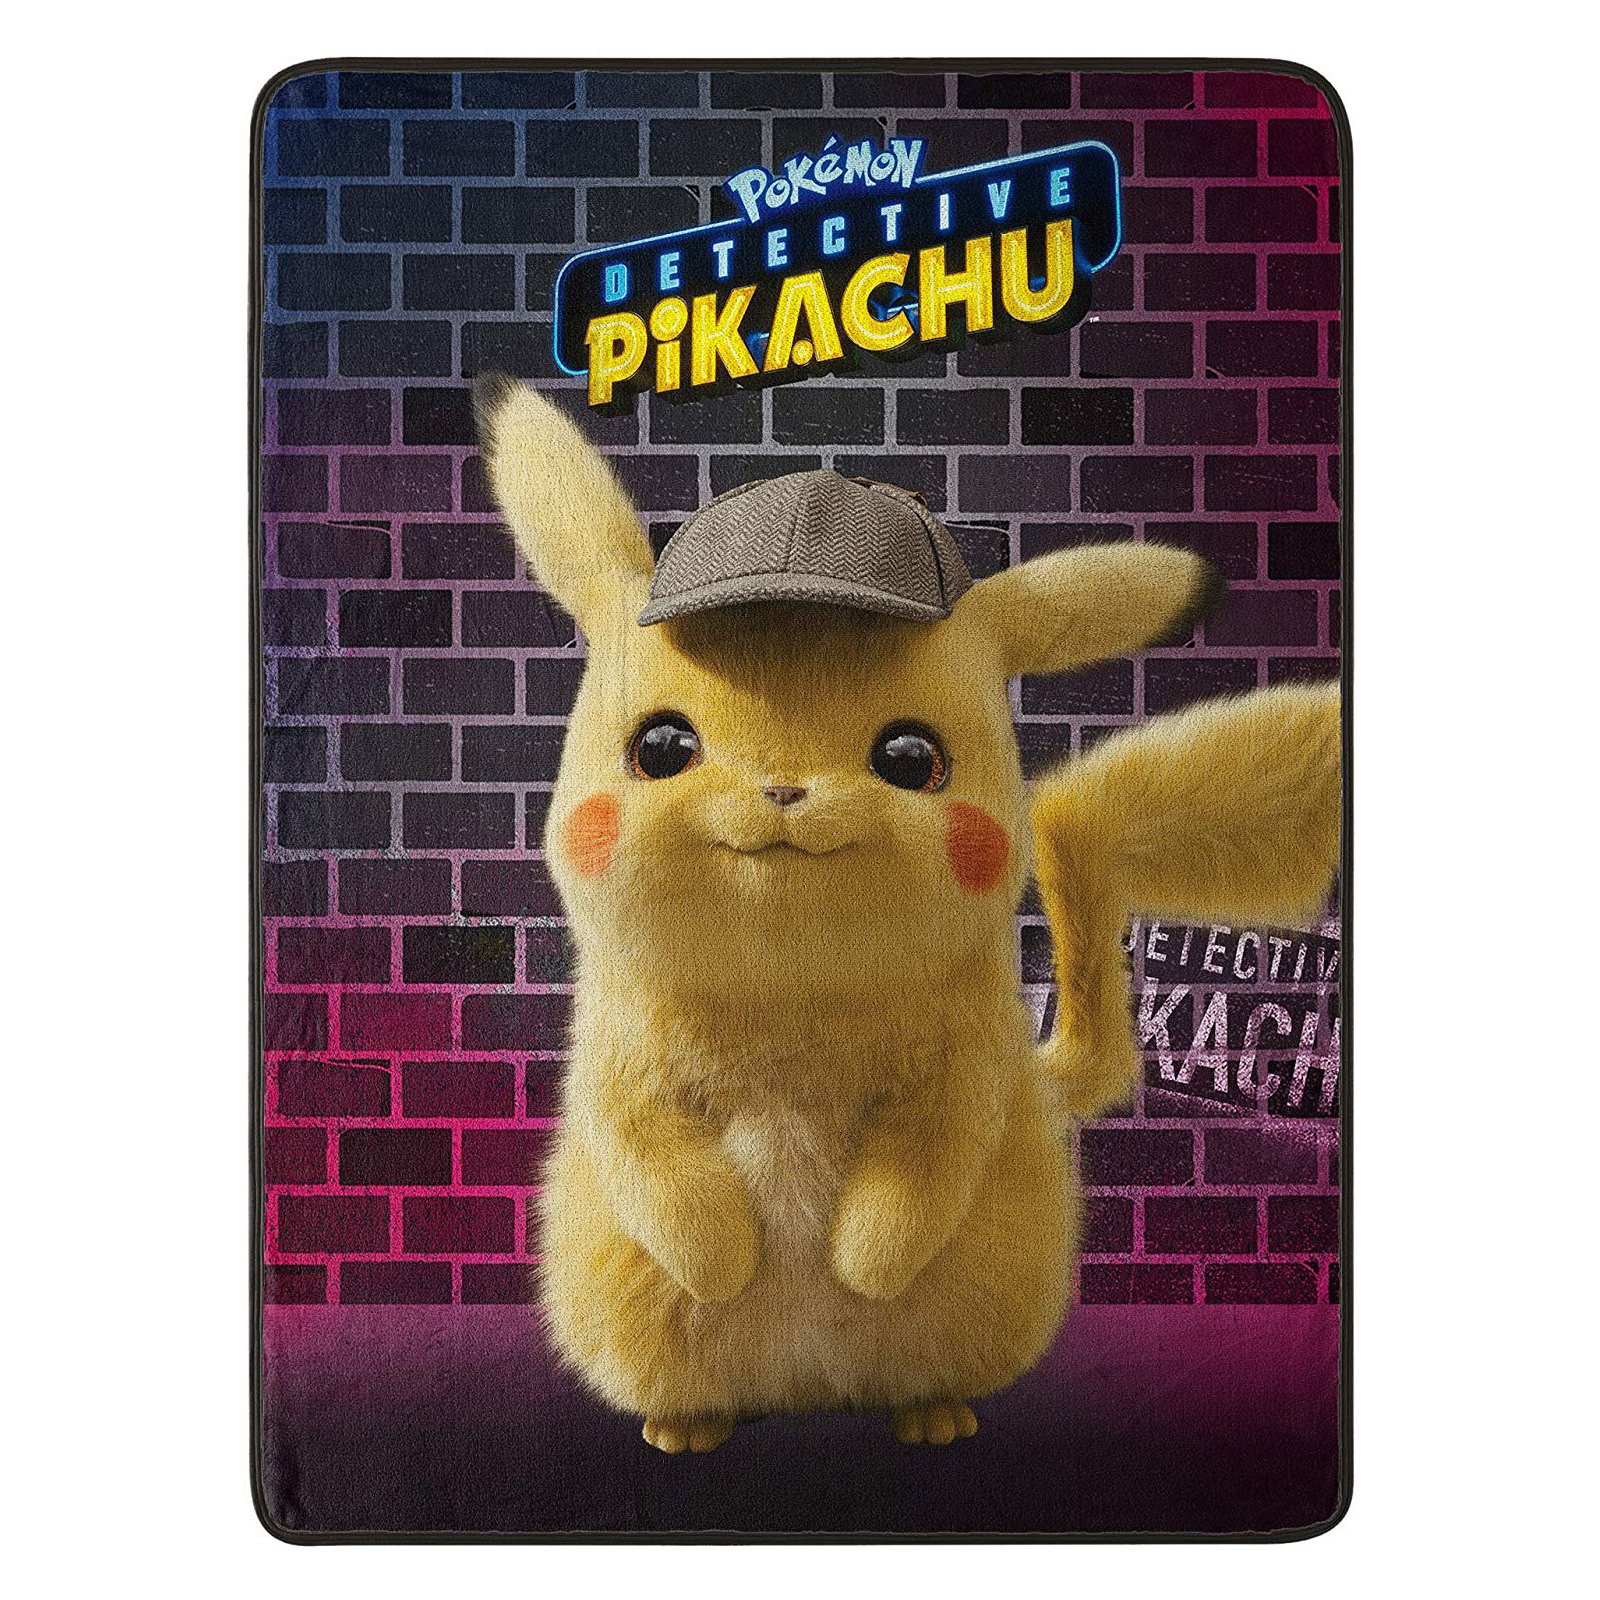 Detective Pikachu Soft Throw Blanket 46 x 60 Inch